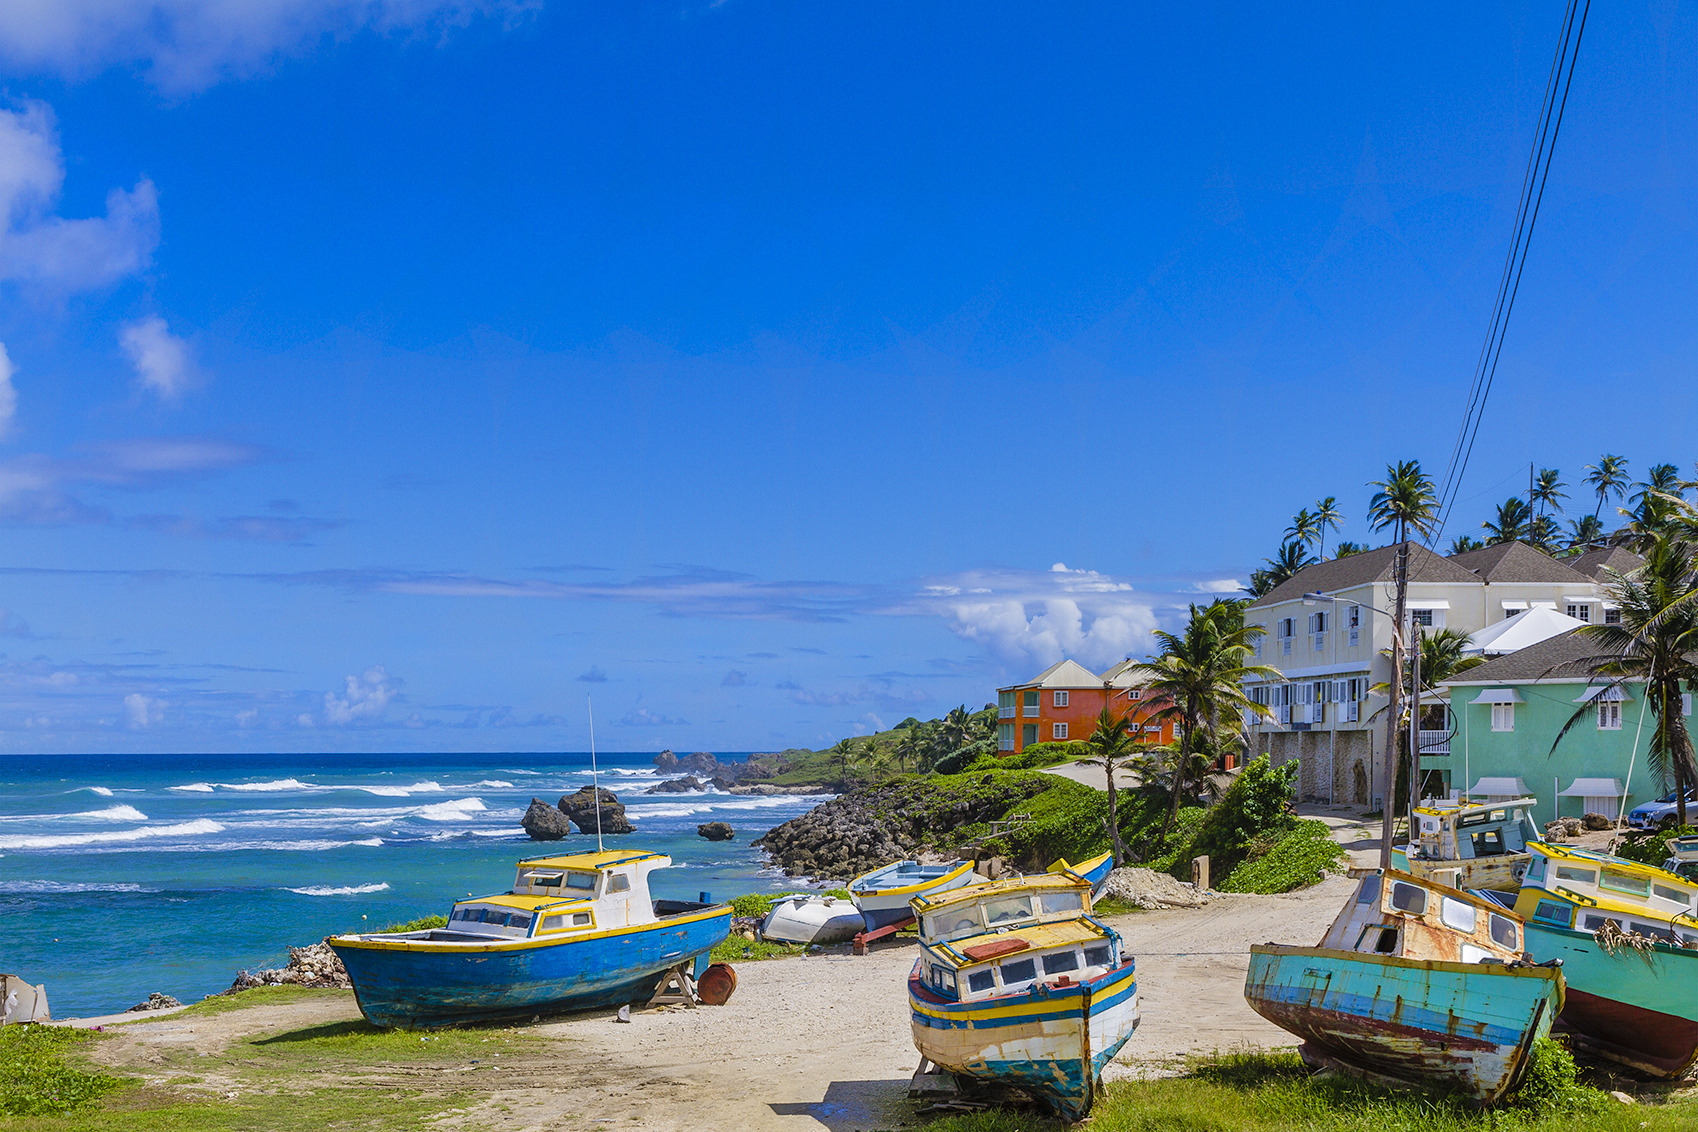 Colorful boats under repair at Tent Bay, a picturesque bay on the east coast of Barbados, facing the Atlantic Ocean.